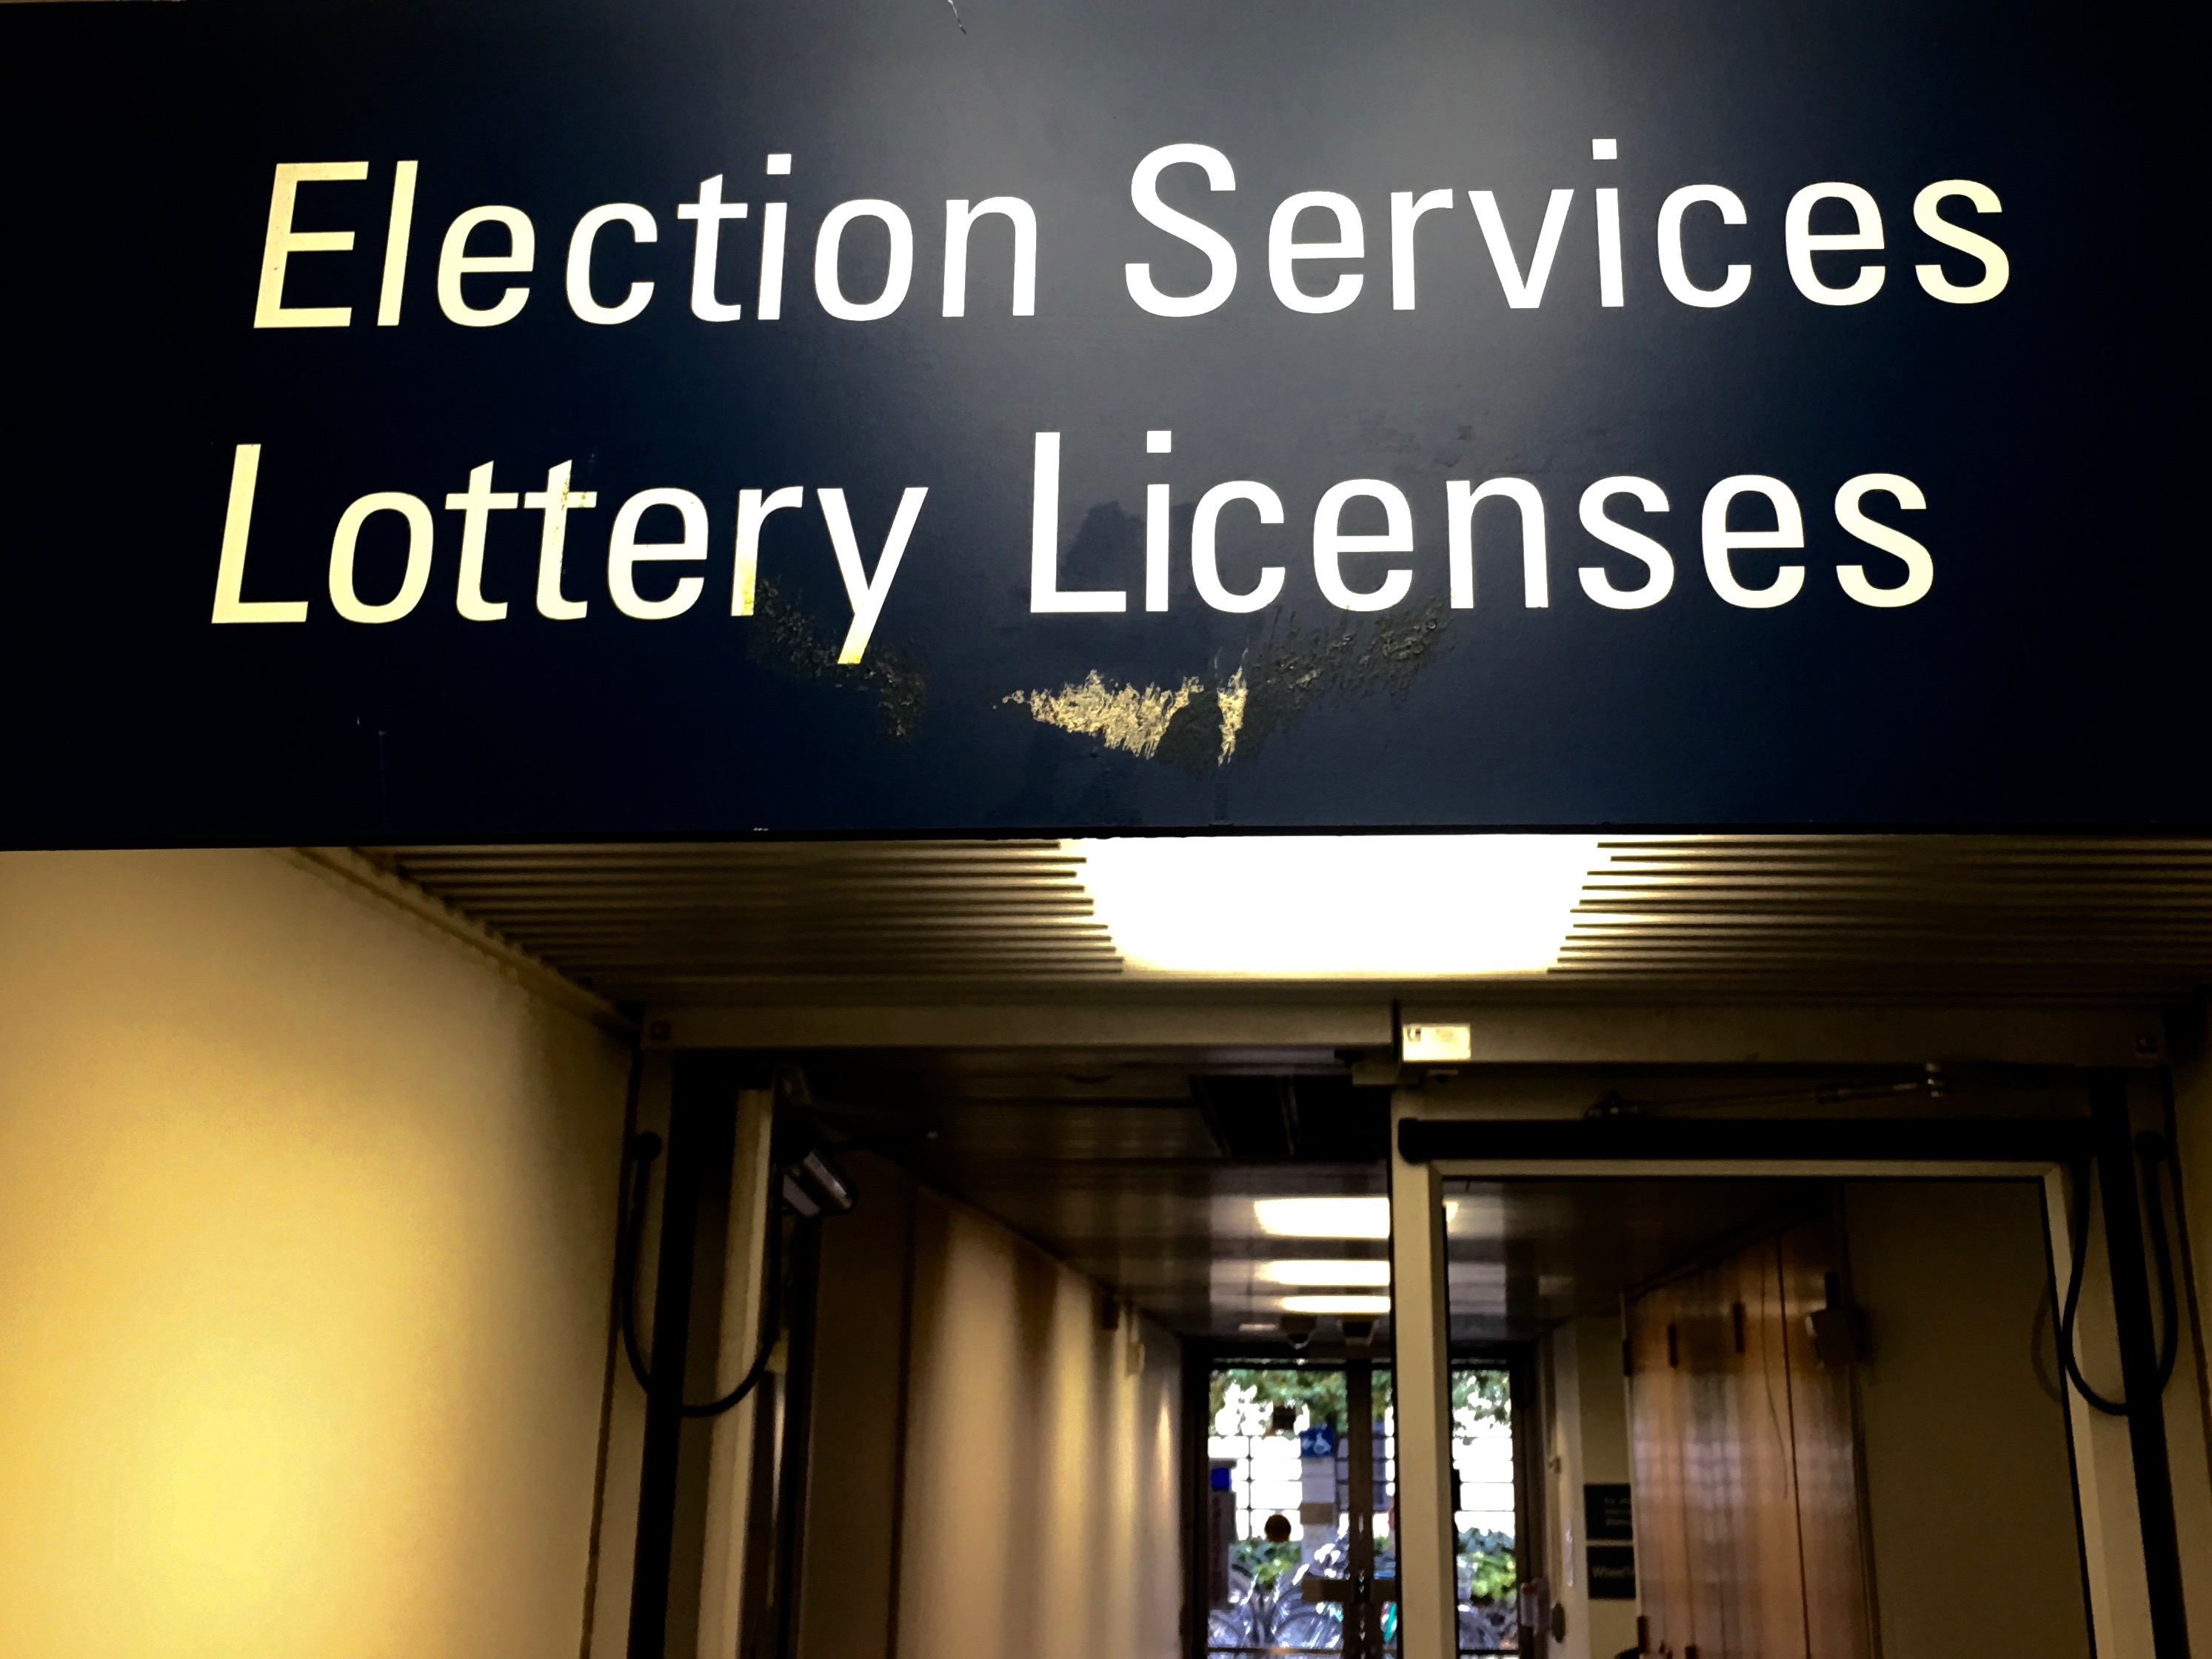 The election services sign outside the elections office at City Hall.